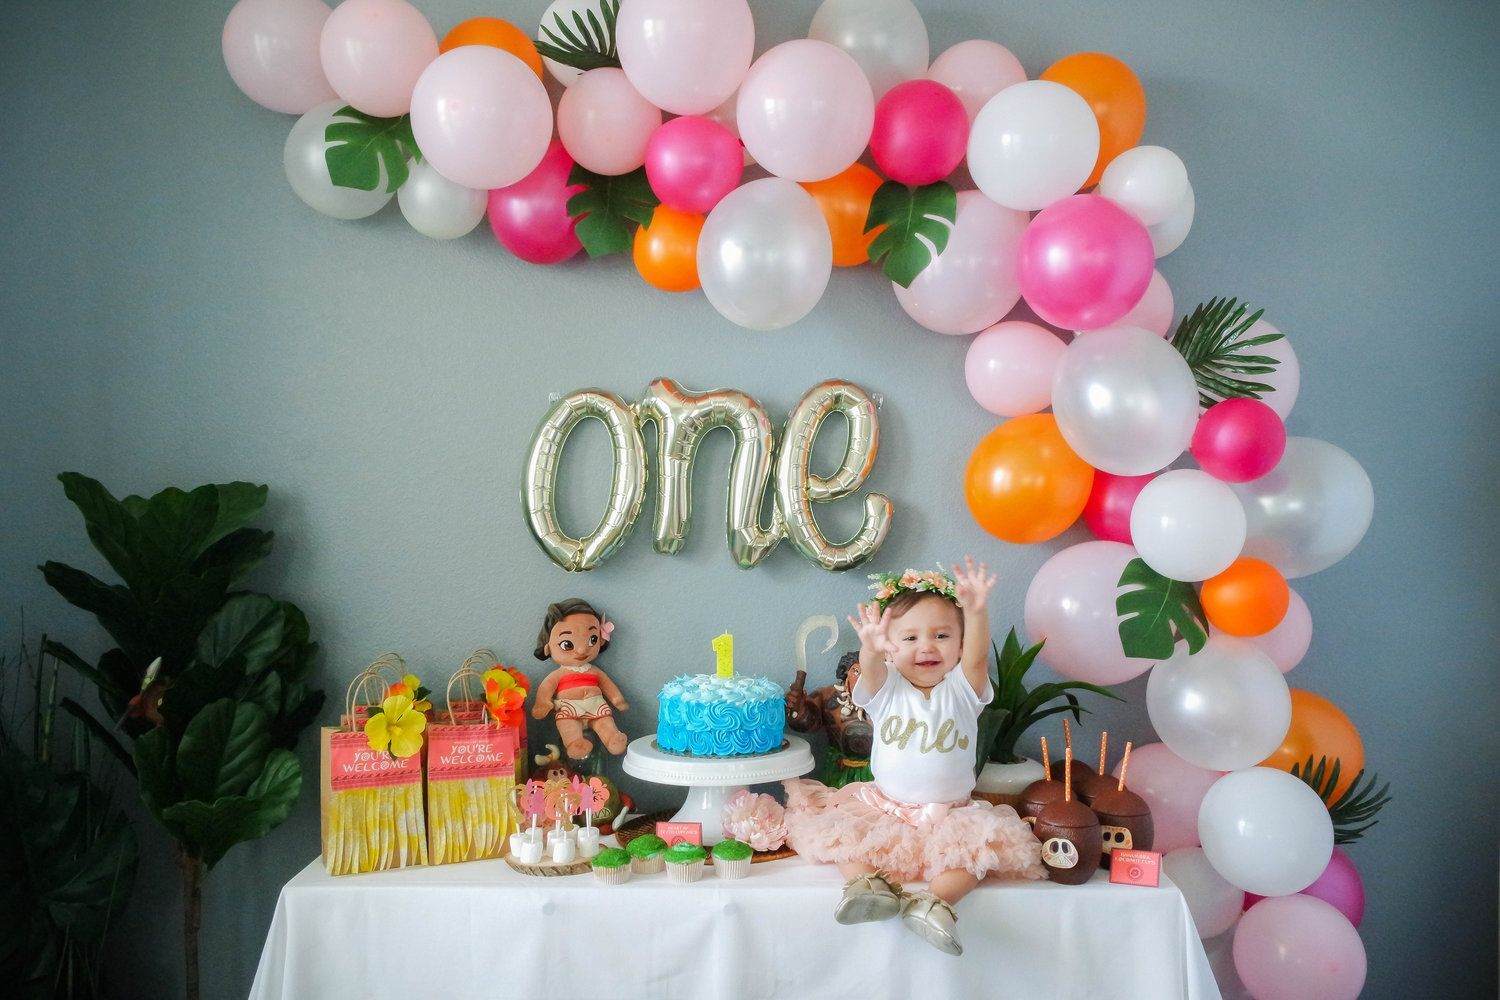 Birthday Party Themes For 1 Year Old Moana Birthday Party Theme Girl Birthday Decorations Girls Birthday Party Themes